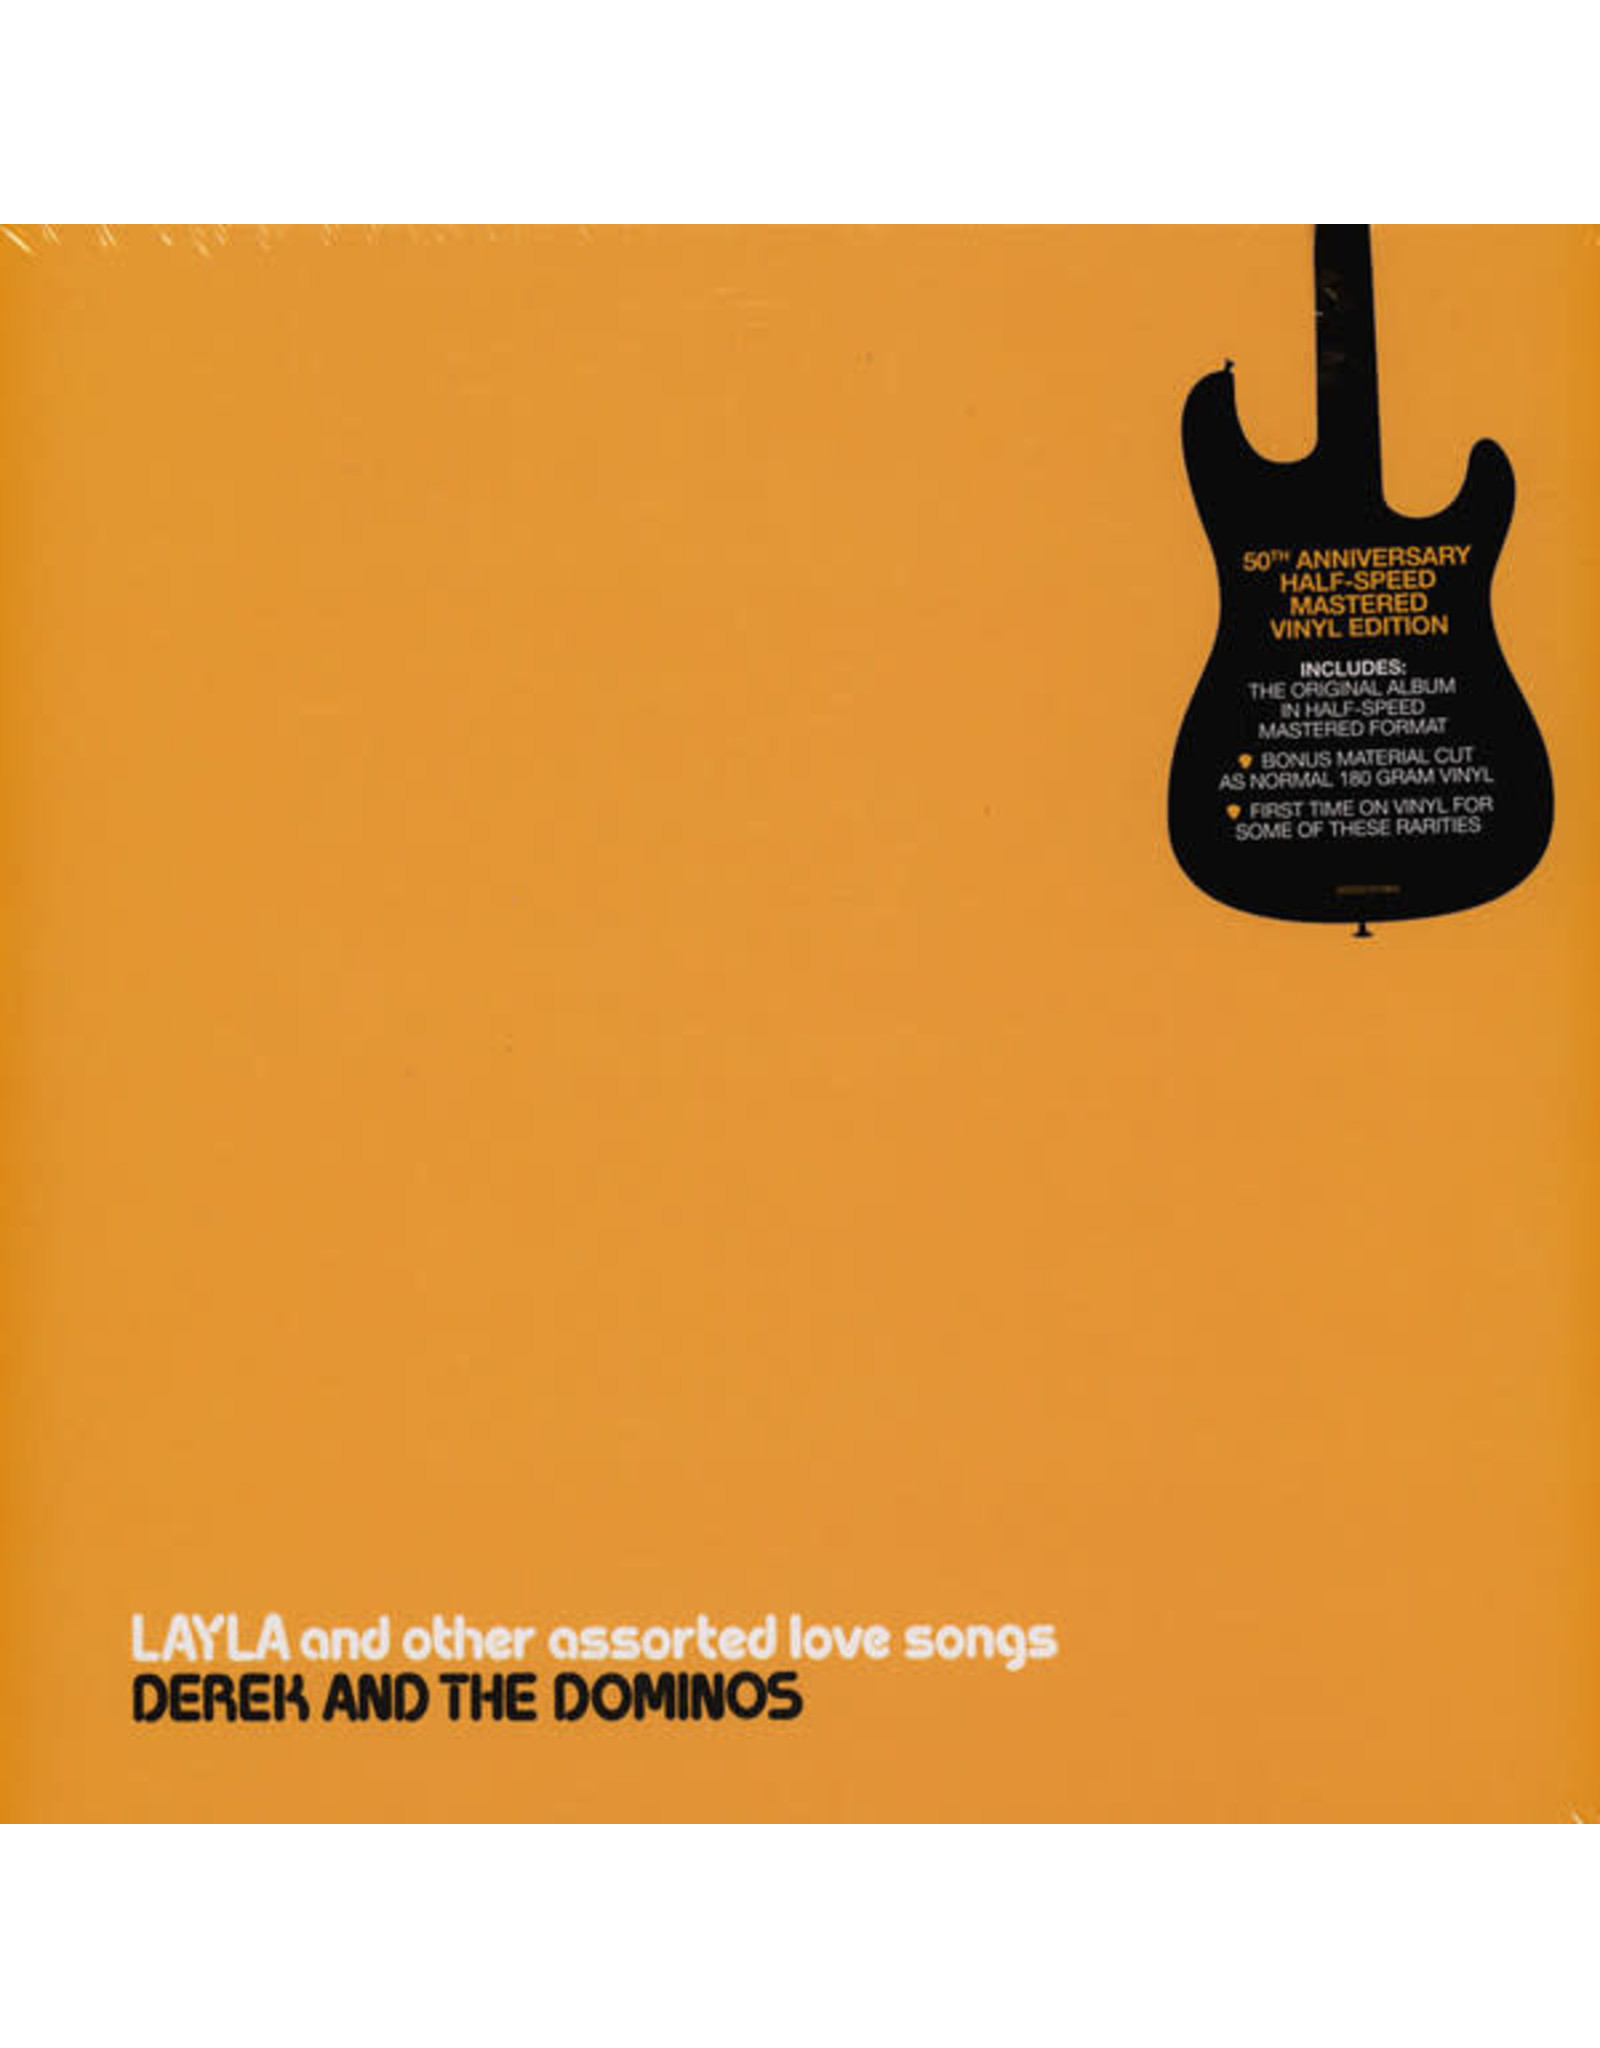 Derek & The Dominos - Layla & The Other Assorted Love Songs (50th Anniversary Half-Speed Box) LP